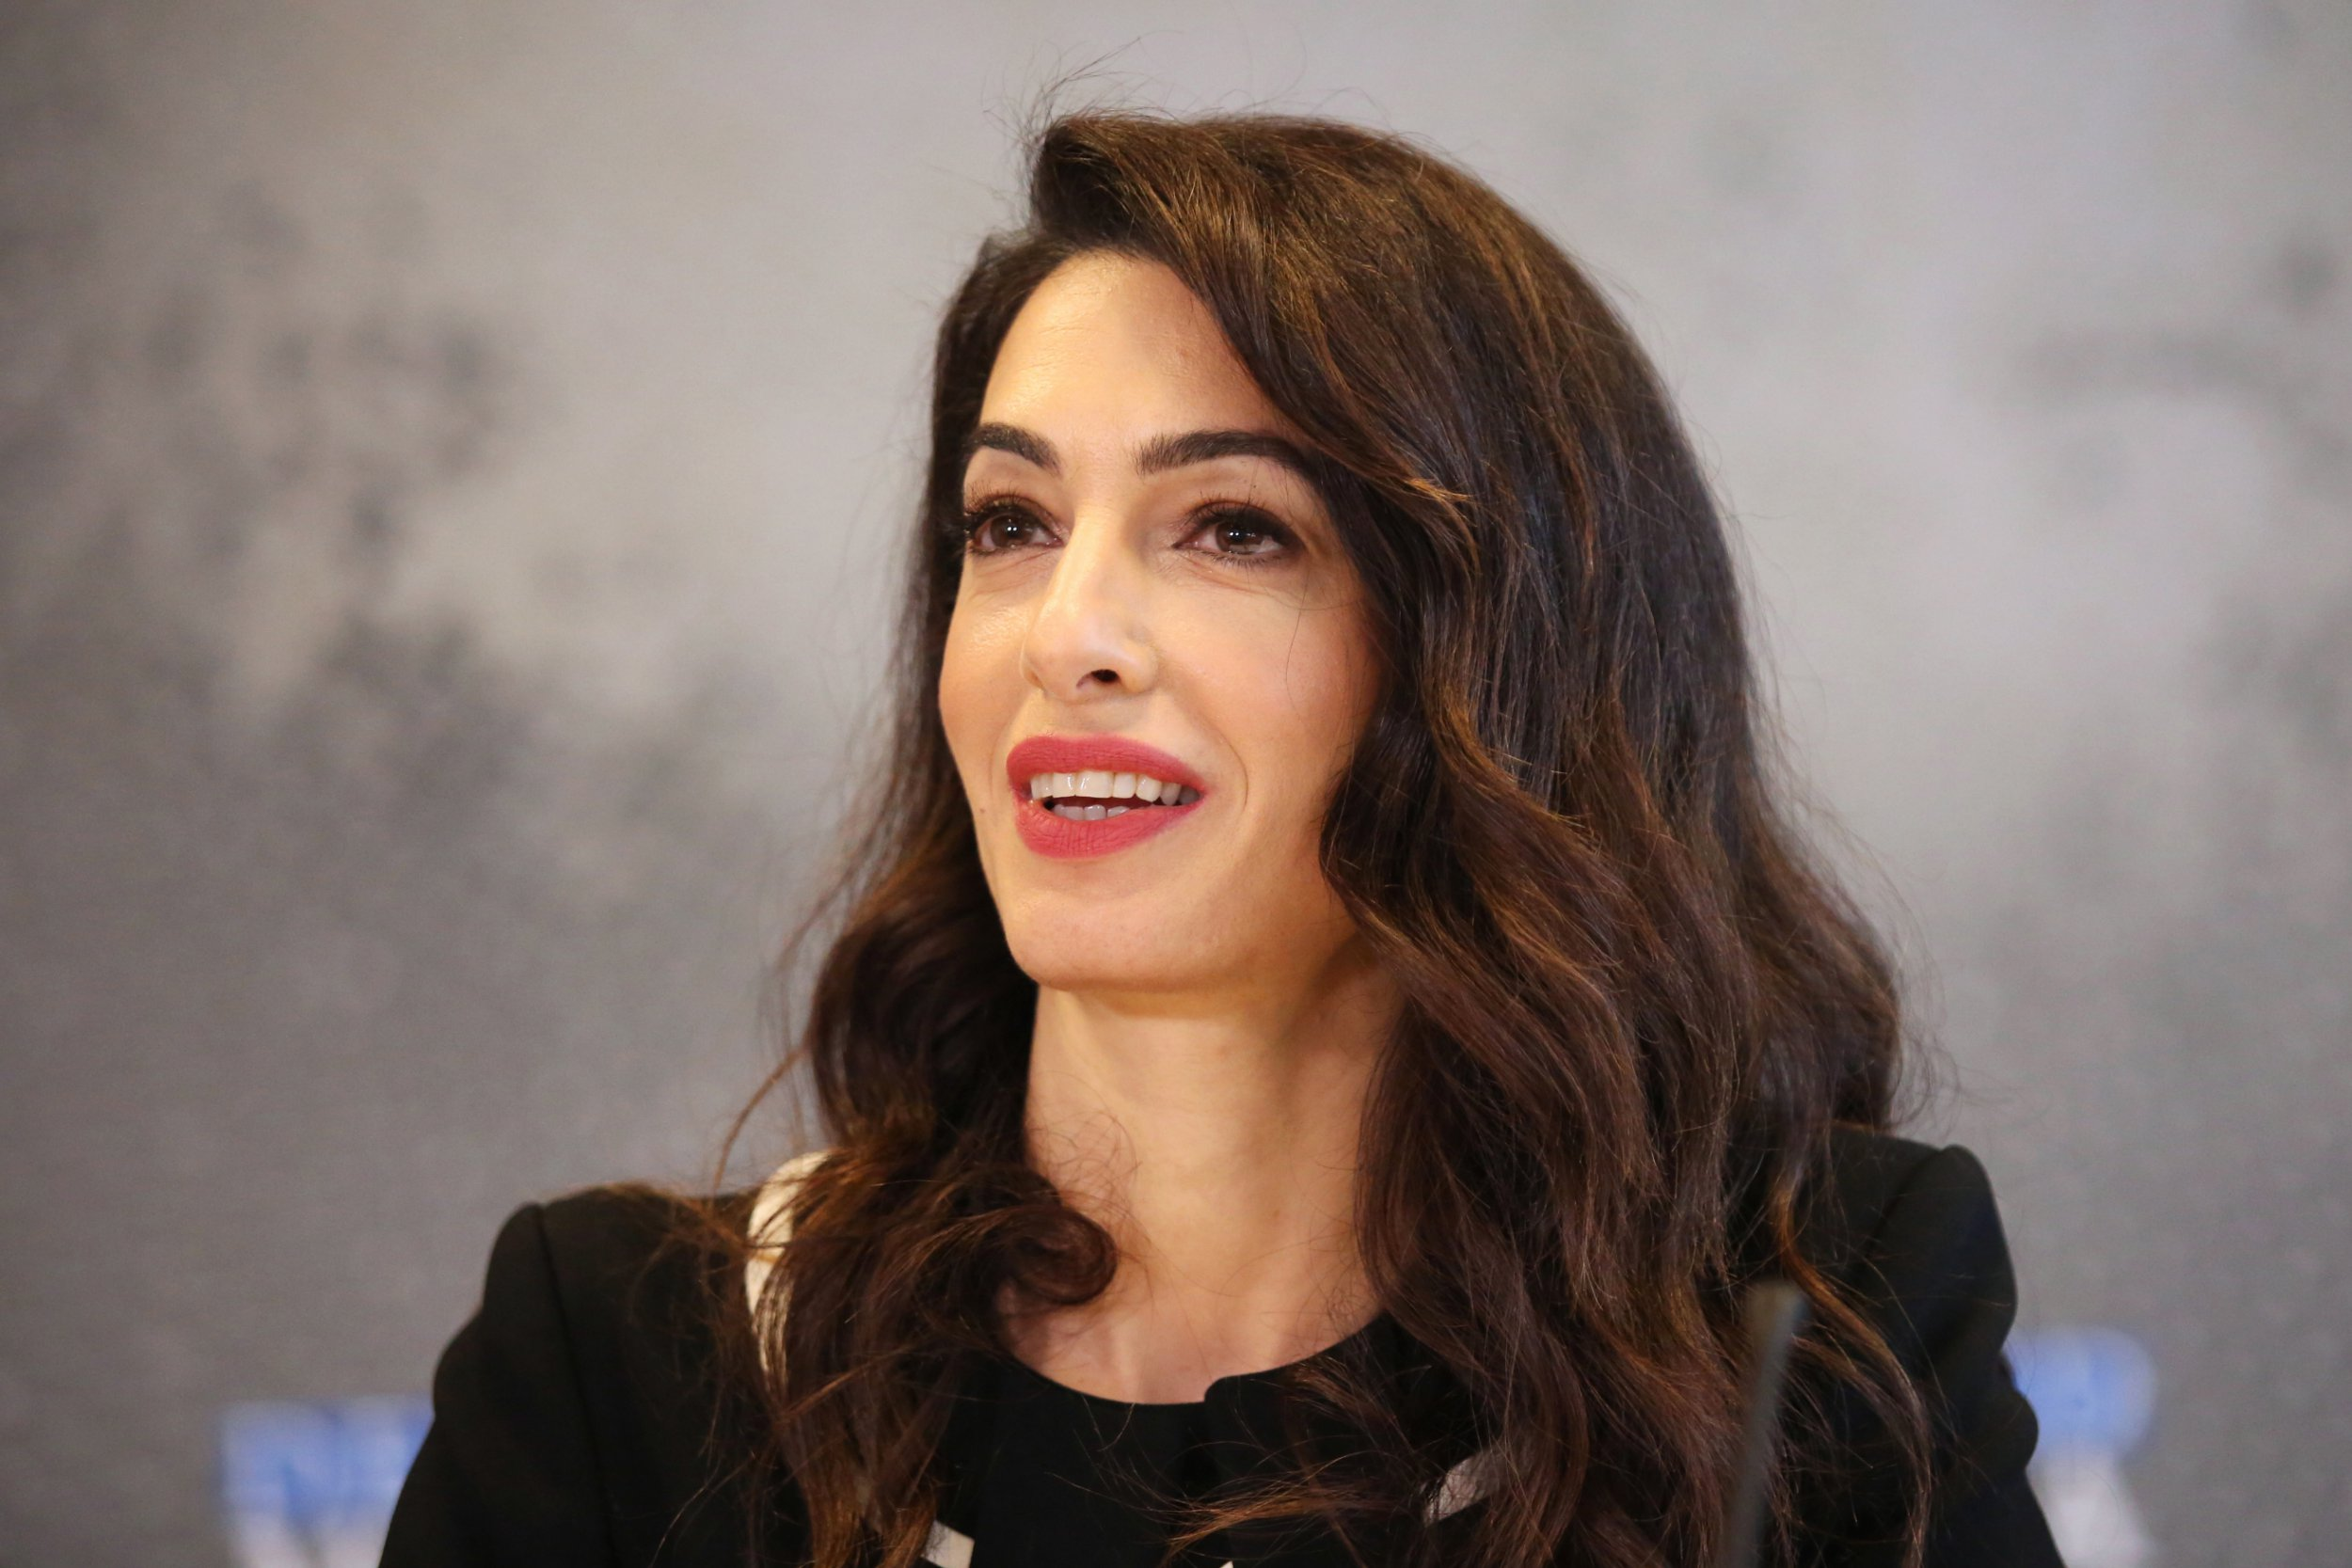 epa07486407 Lebanese-British barrister Amal Clooney delivers a statement to media in the margins of the G7 Foreign Ministers Meeting in Dinard, France, 05 April 2019. The gathering of Foreign Ministers in Dinard and Saint Malo on 05 and 06 April 2019 takes place ahead of the G7 Summit in Biarritz, from 25 to 27 August 2019. EPA/THIBAULT VANDERMERSCH